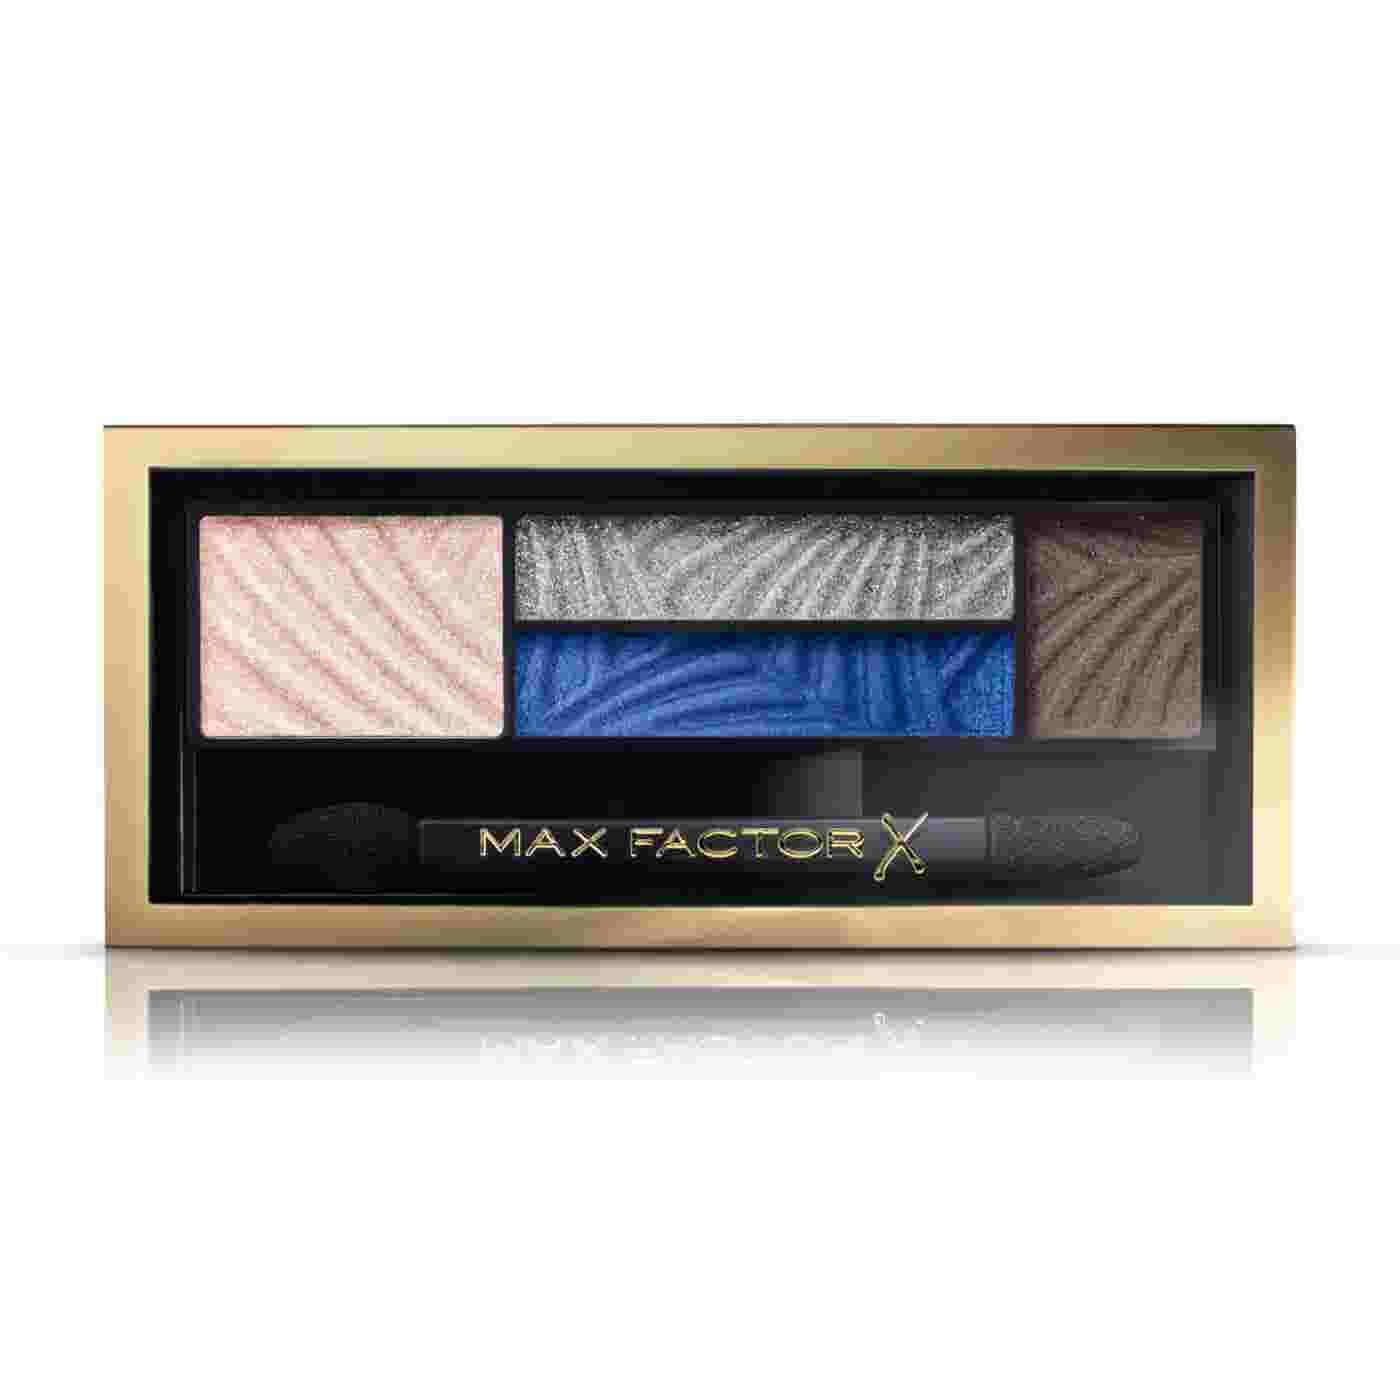 Max Factor Smokey Eye Drama Kit in Azure Allure